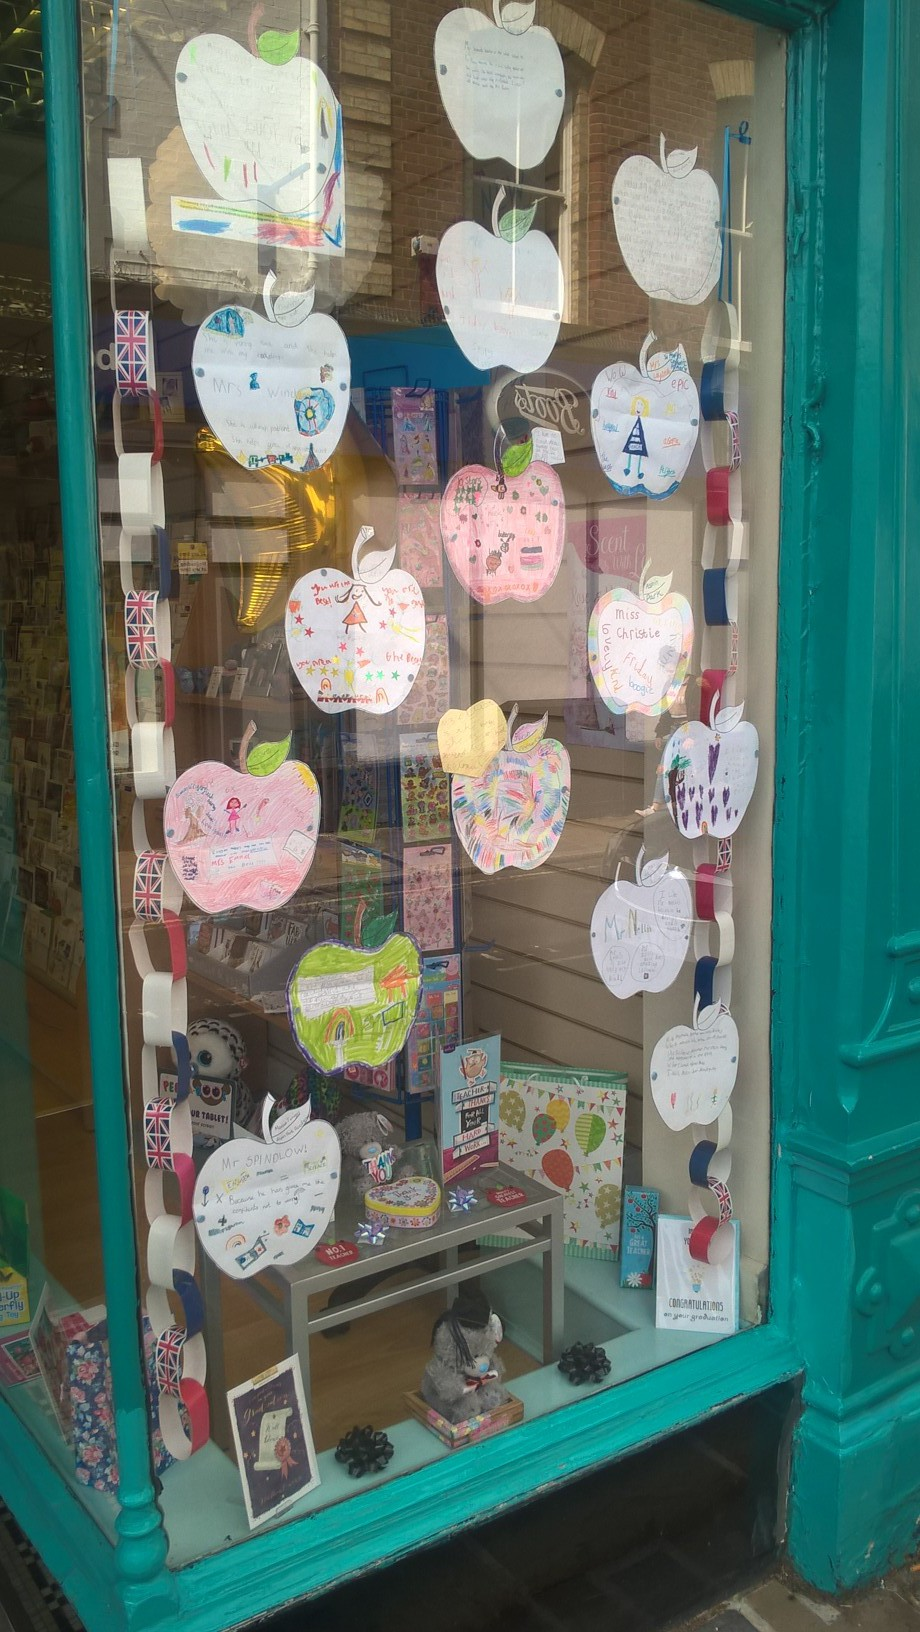 The 'apples for teacher', created by the school children adorned the shop's window in the run up to the end of term.